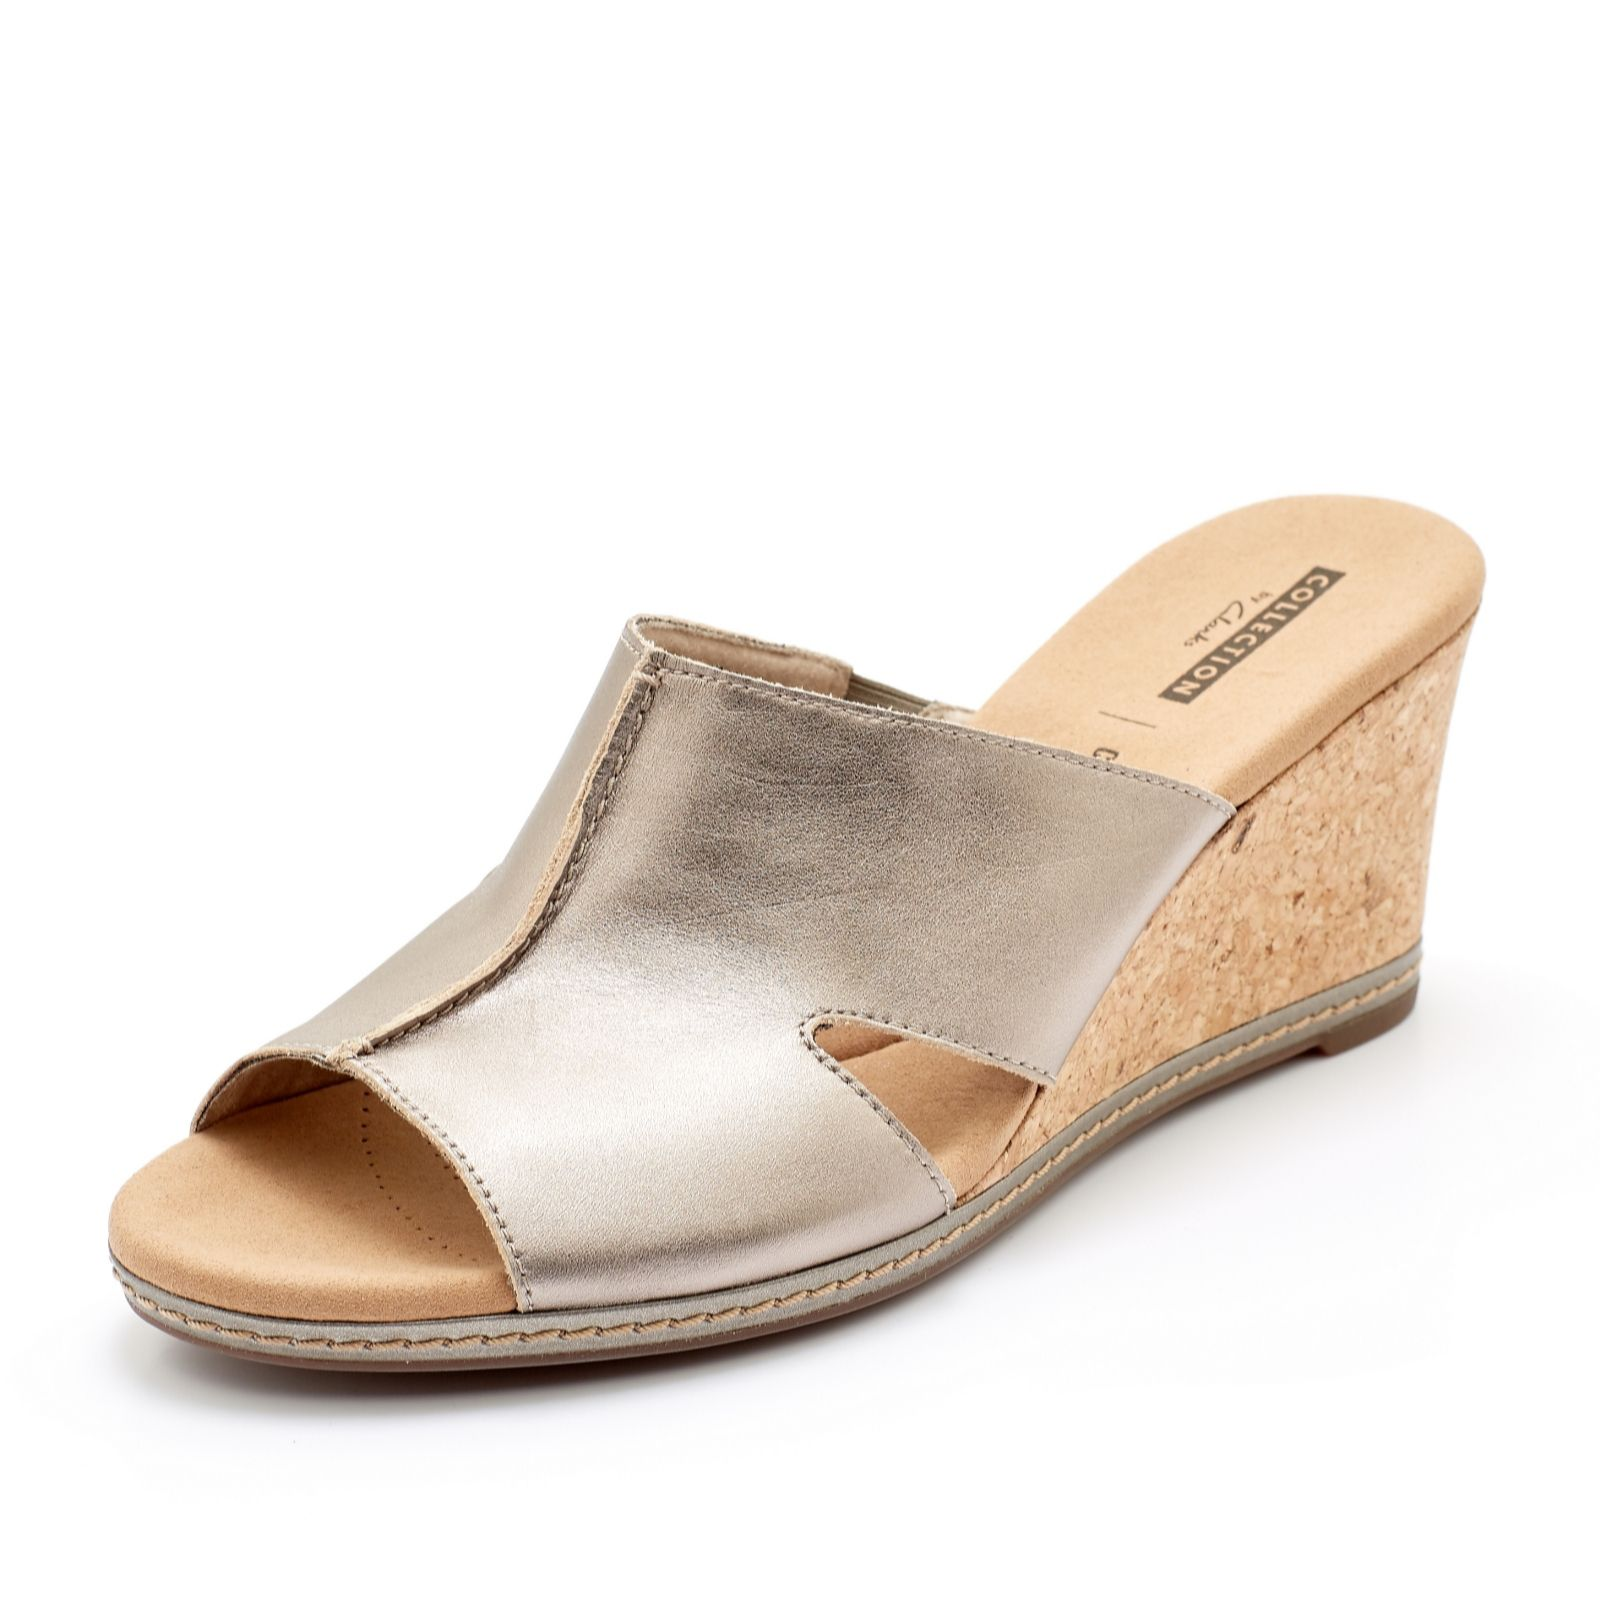 87afad651536 Clarks Lafely Mio Wedge Sandal Standard Fit - QVC UK